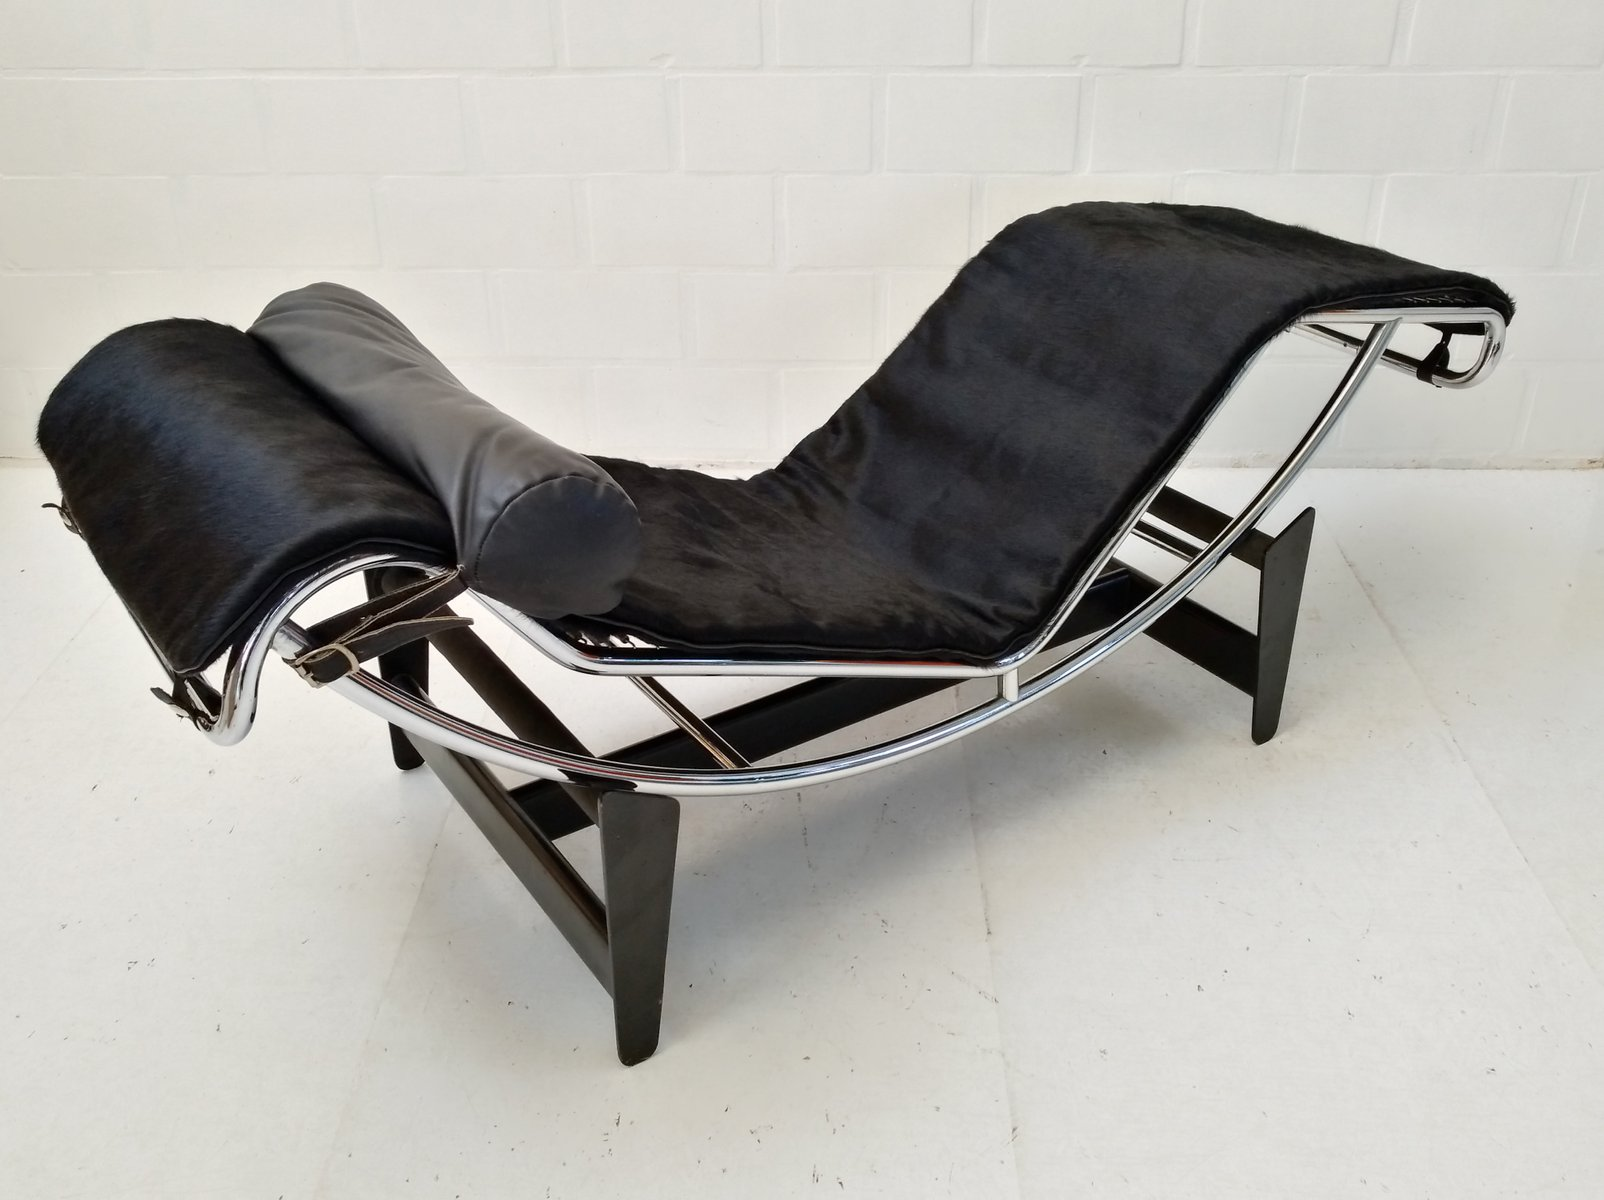 Early lc4 chaise longue by le corbusier perriand for Chaise corbusier